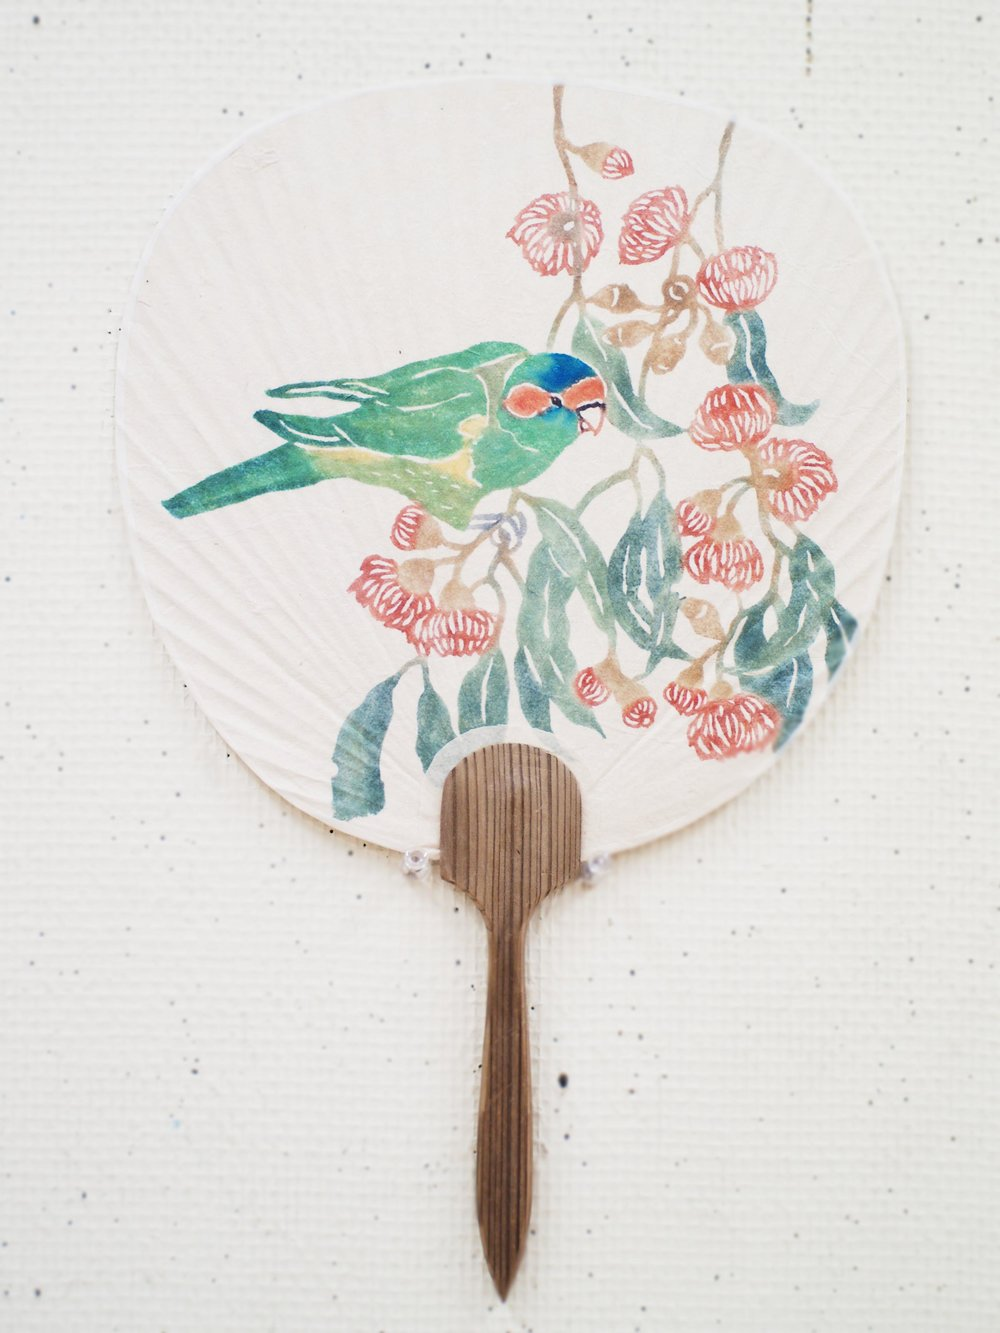 Musk Lorikeet Uchiwa 2012. katazome on washi, vintage Japanese fan frame and handle.